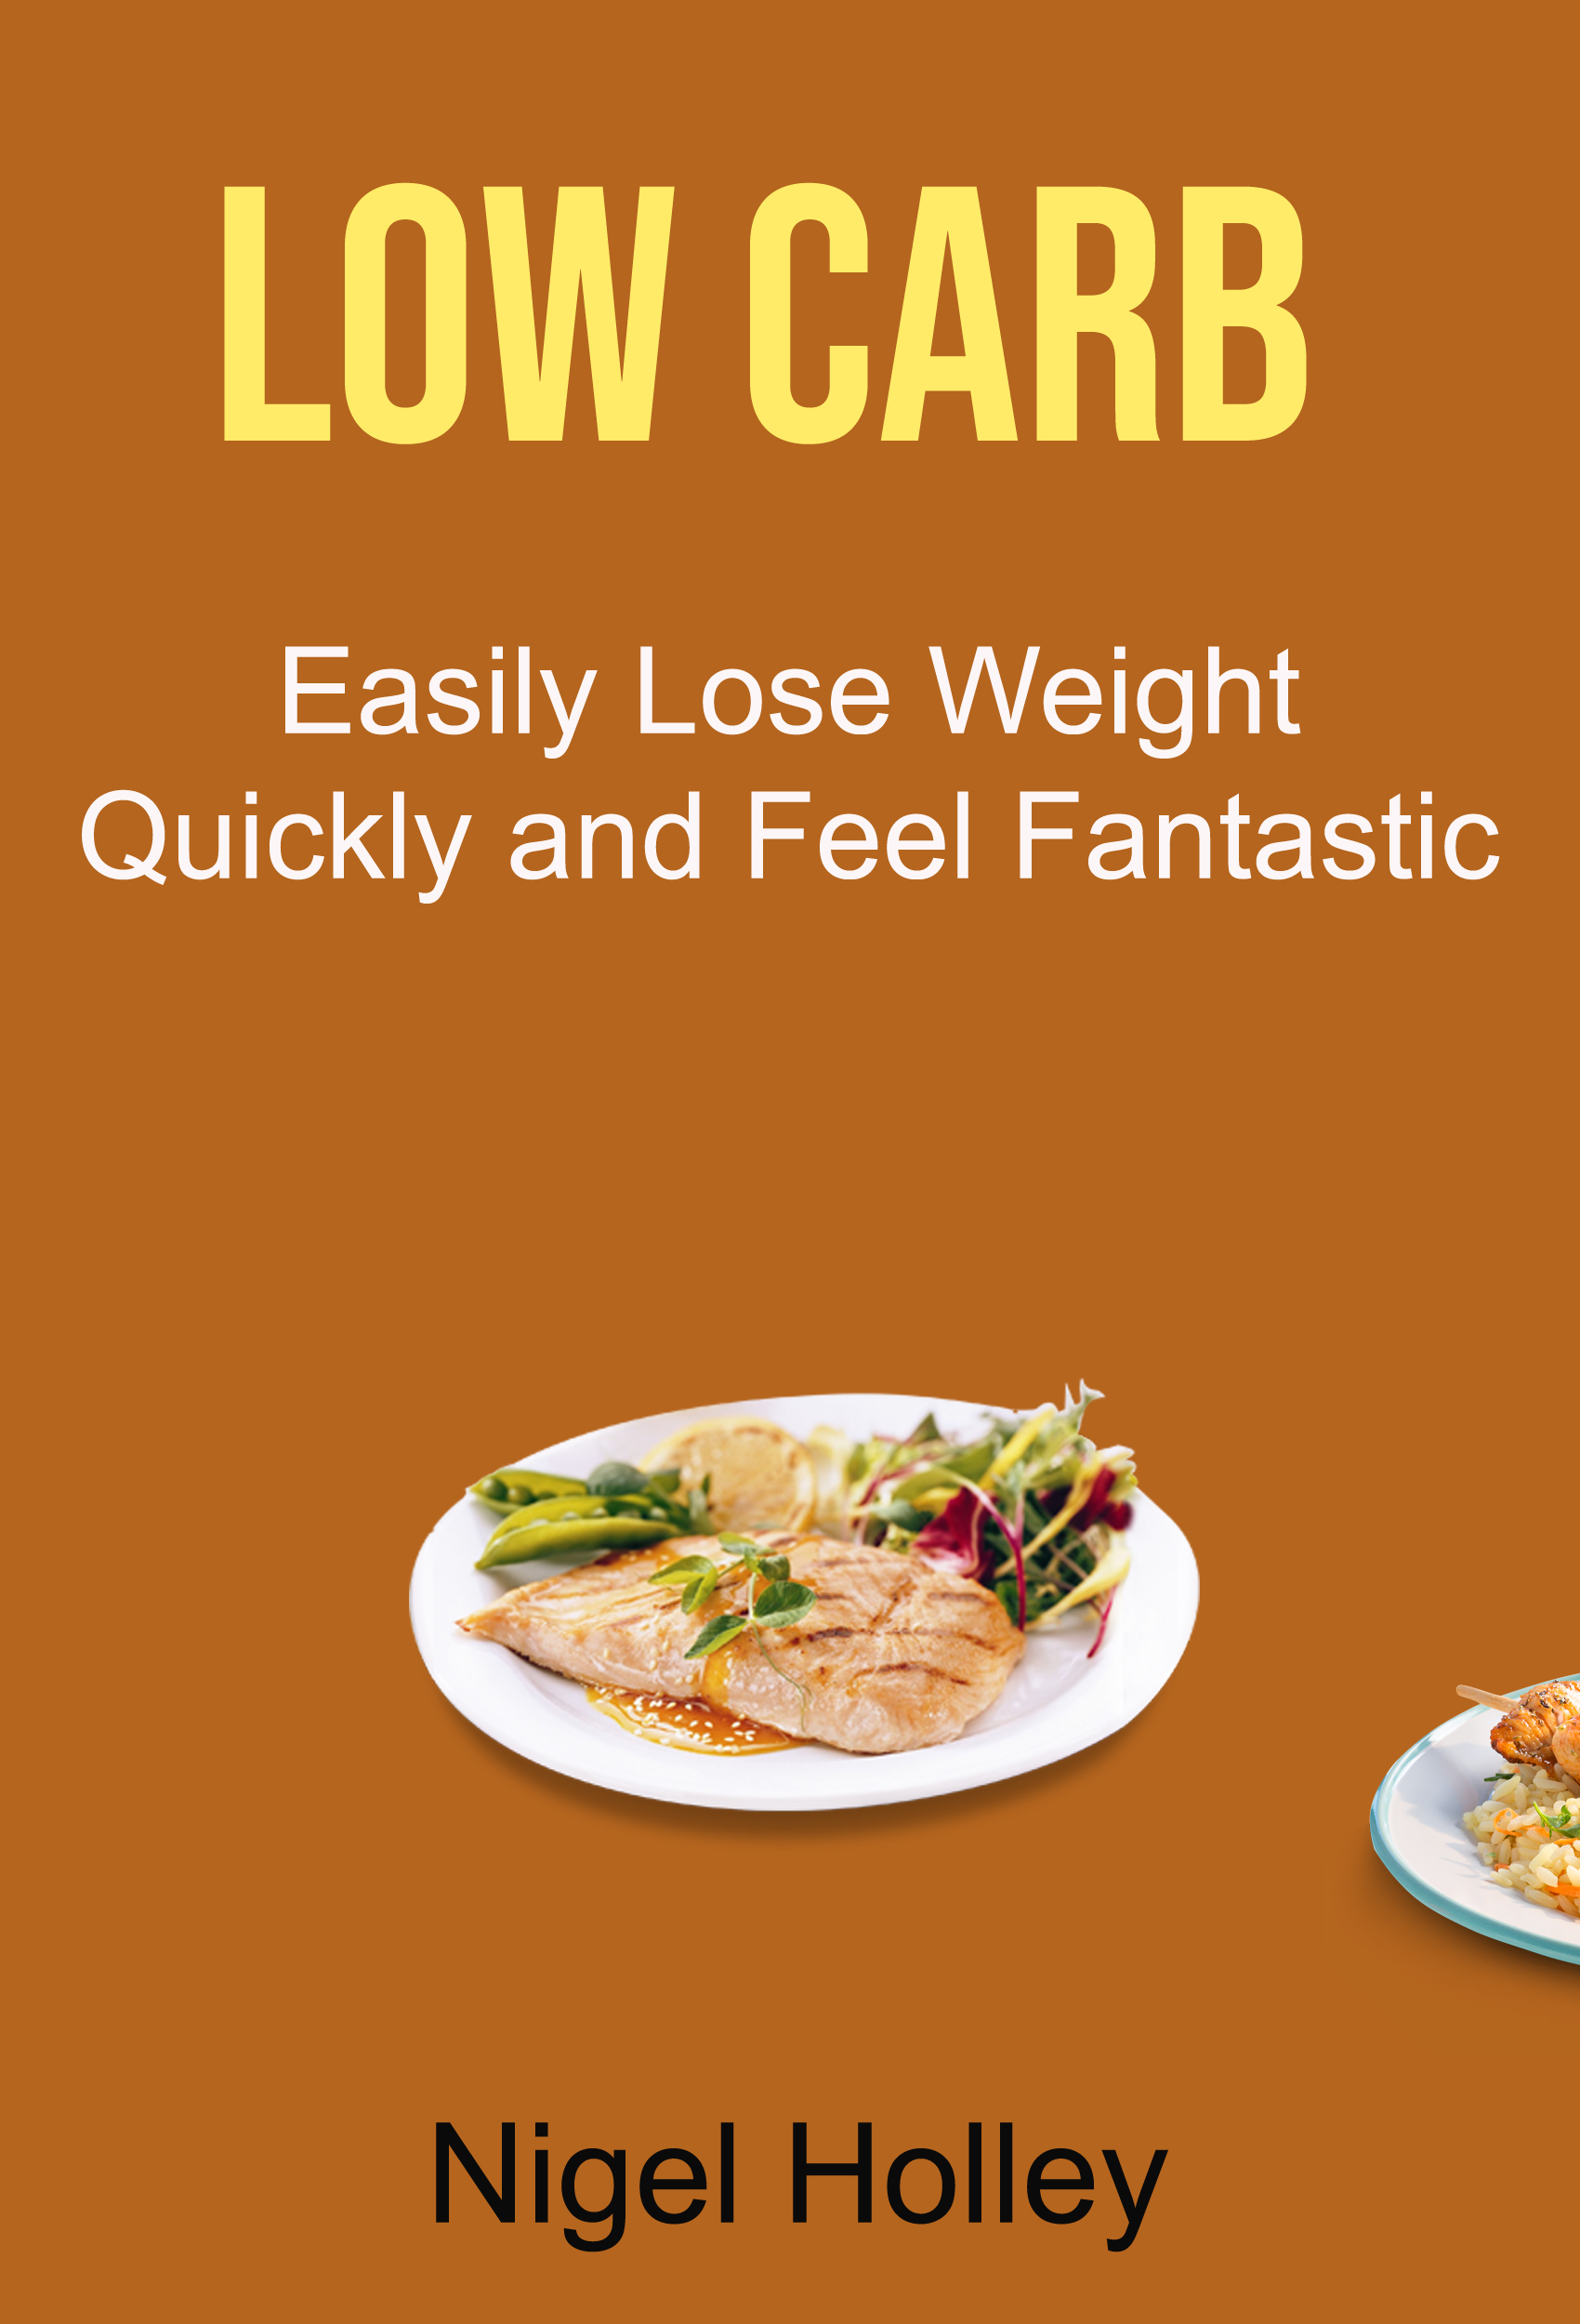 Low carb: easily lose weight quickly and feel fantastic